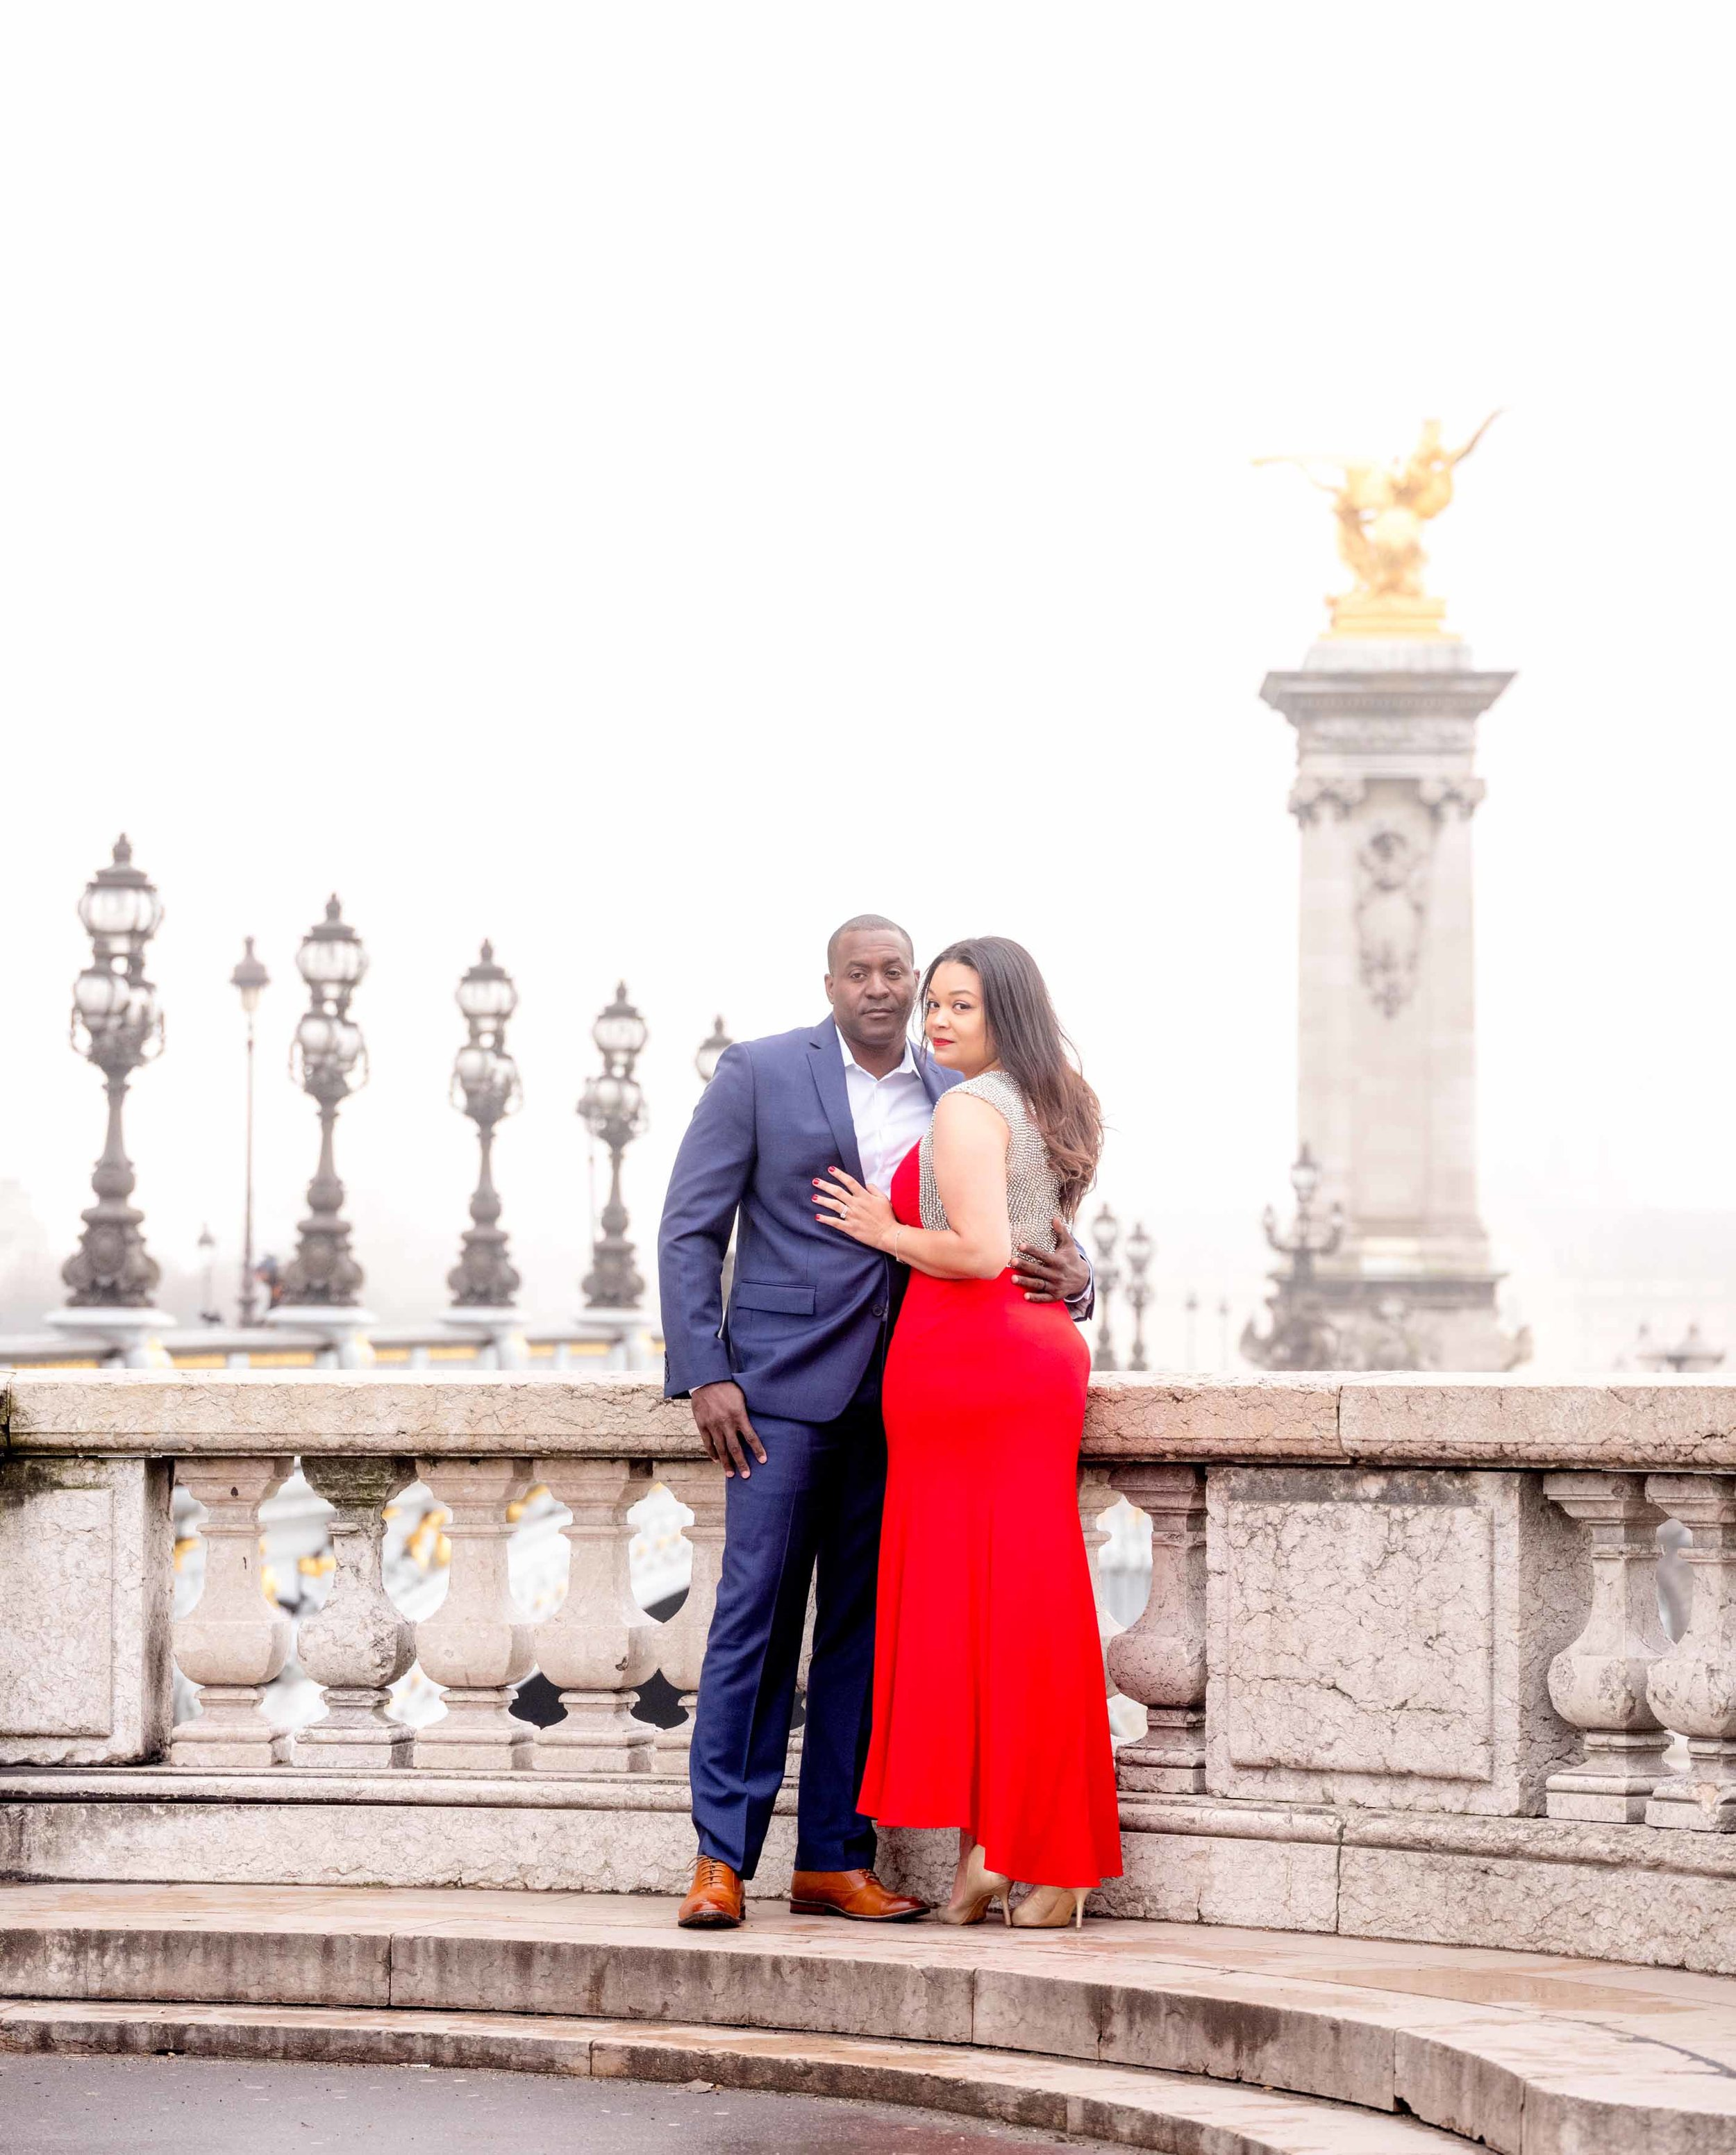 Valentine's Day couples photo shoot in Paris